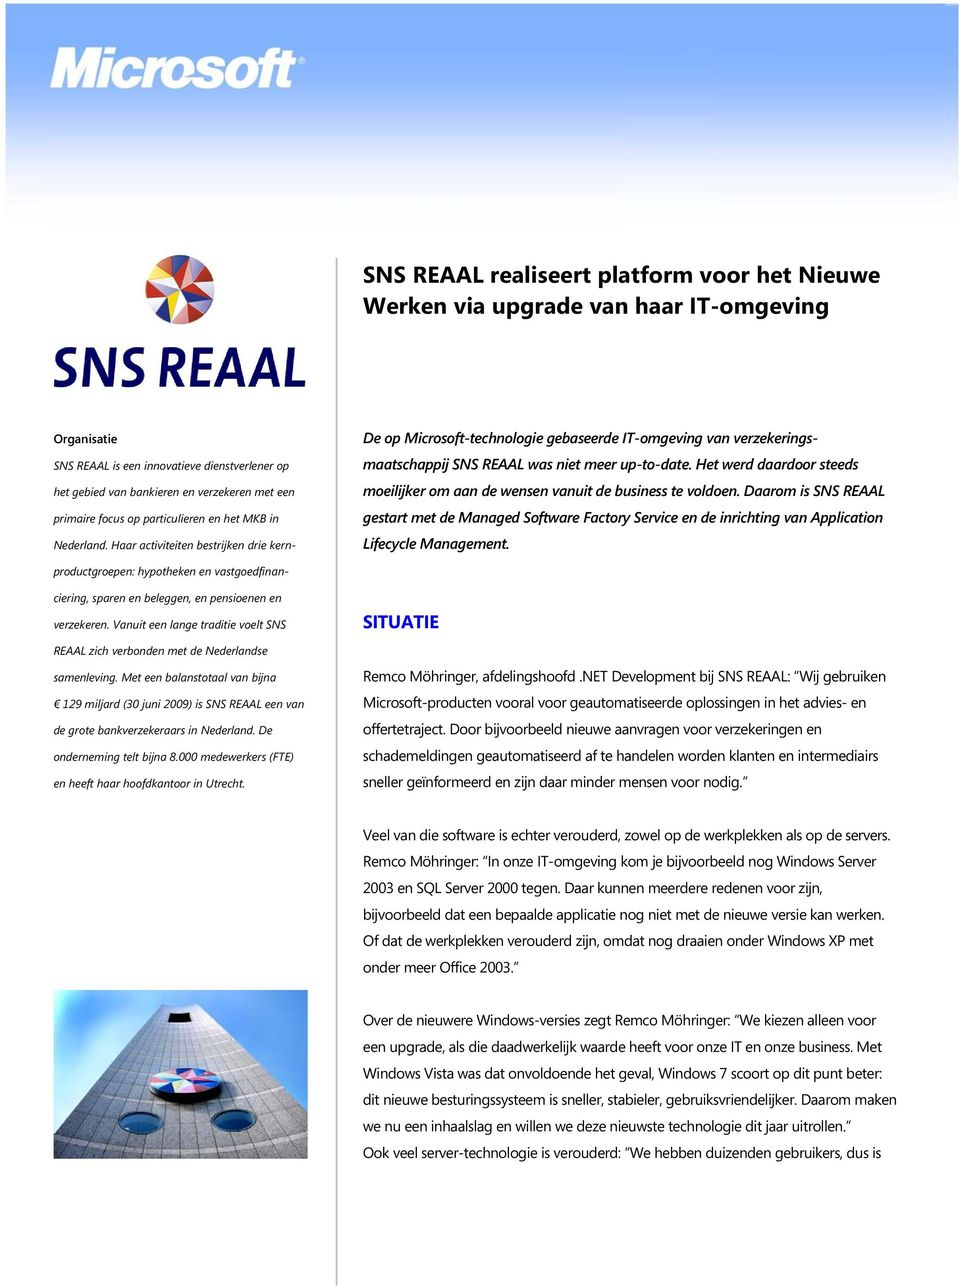 Daarom is SNS REAAL gestart met de Managed Software Factory Service en de inrichting van Application Lifecycle Management.